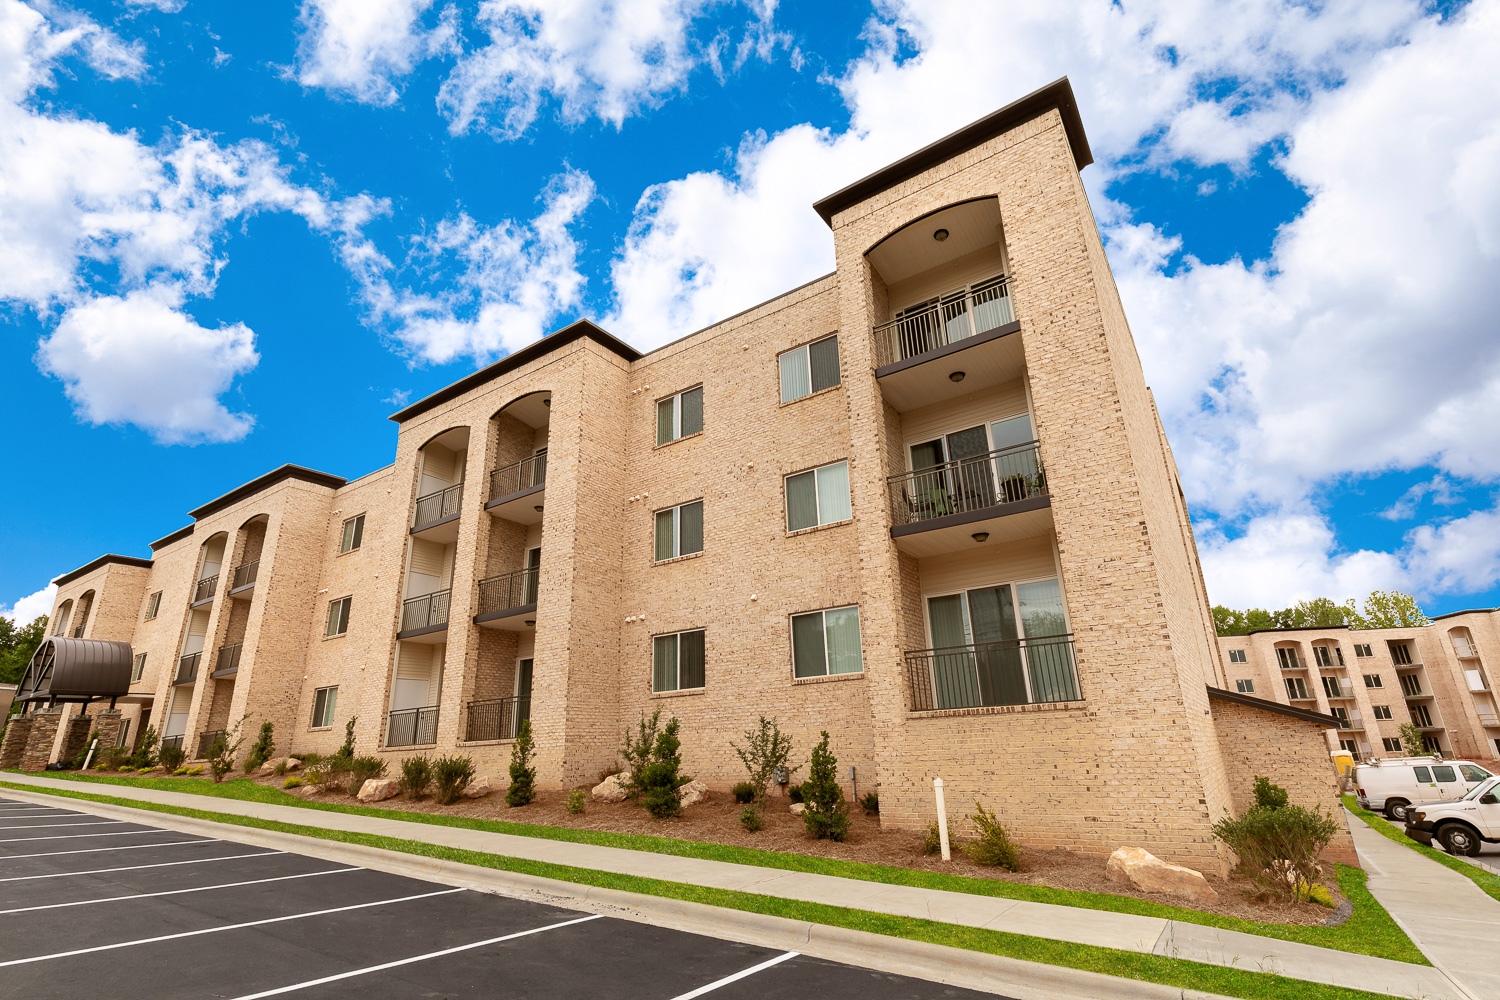 The Lofts At New Garden Apartments In Greensboro Nc